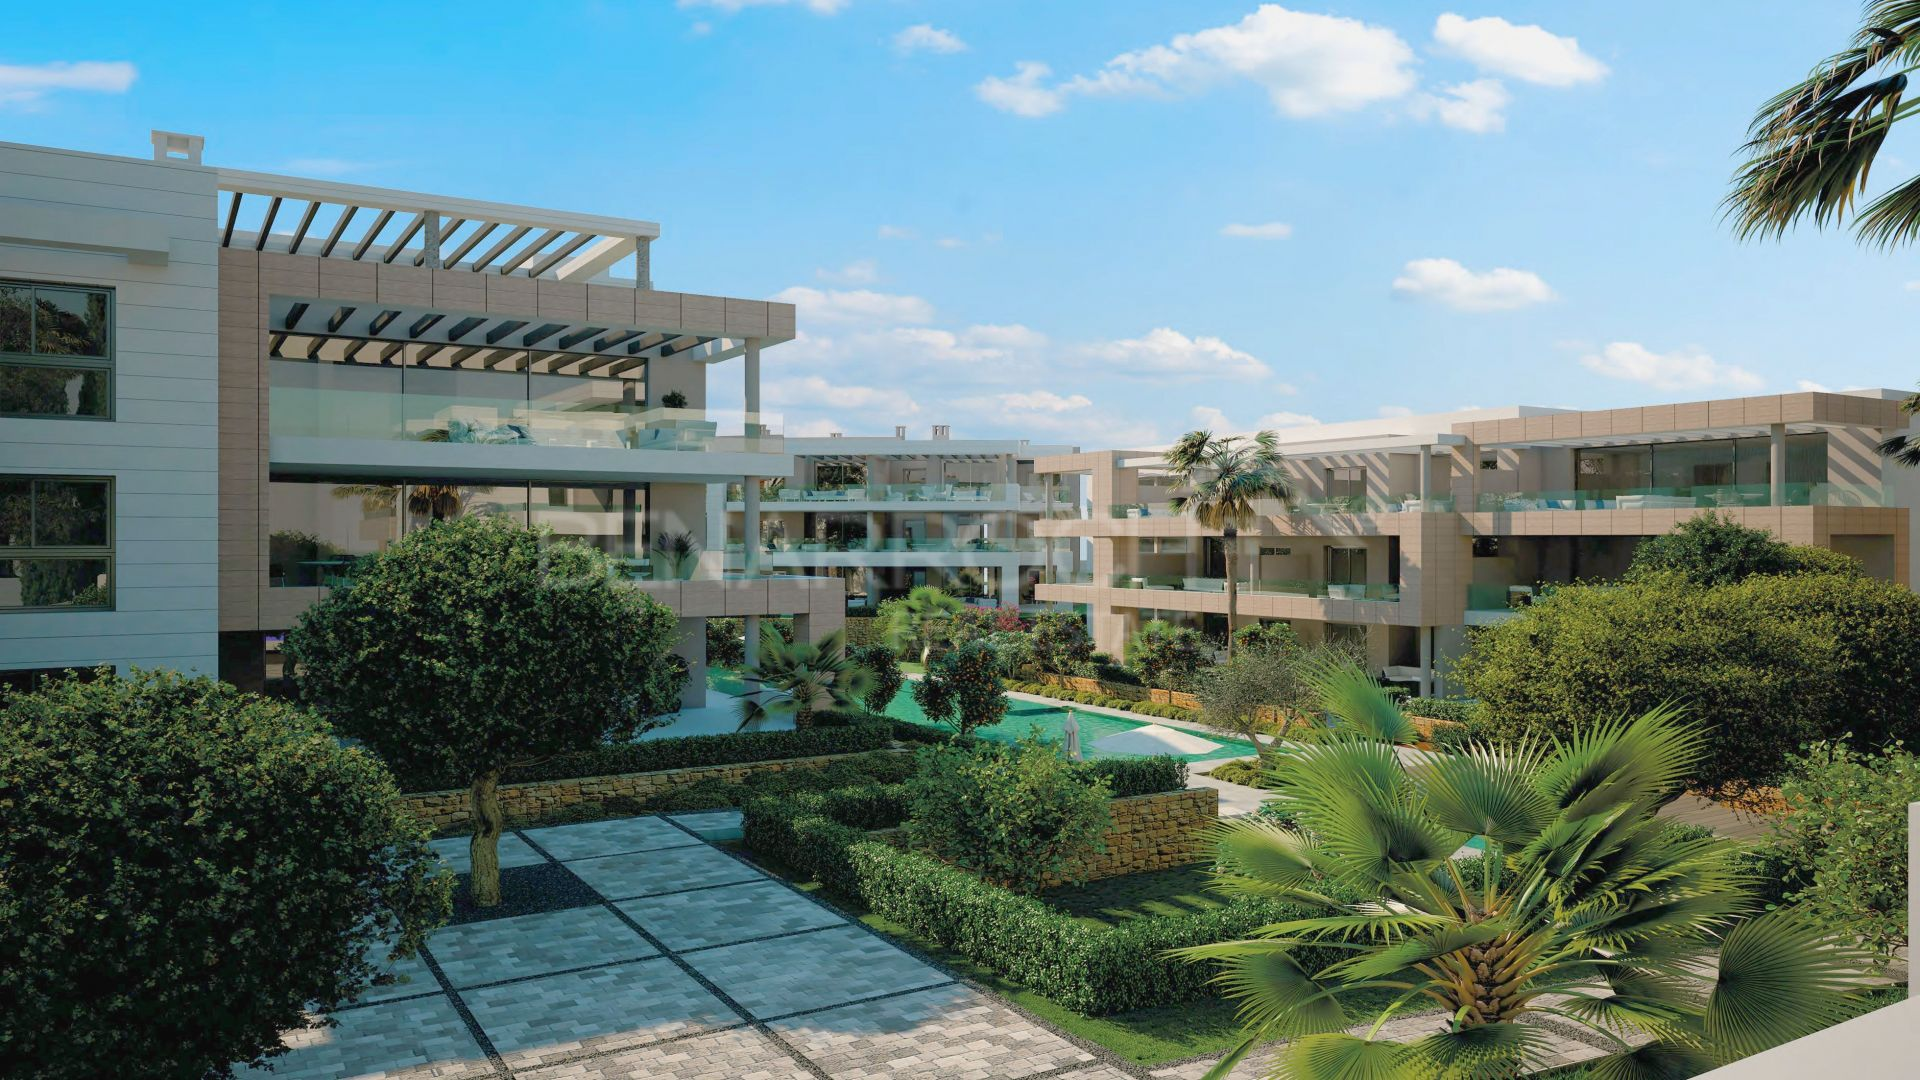 Syzygy The Residences: Contemporary apartments and penthouses in a beautiful location